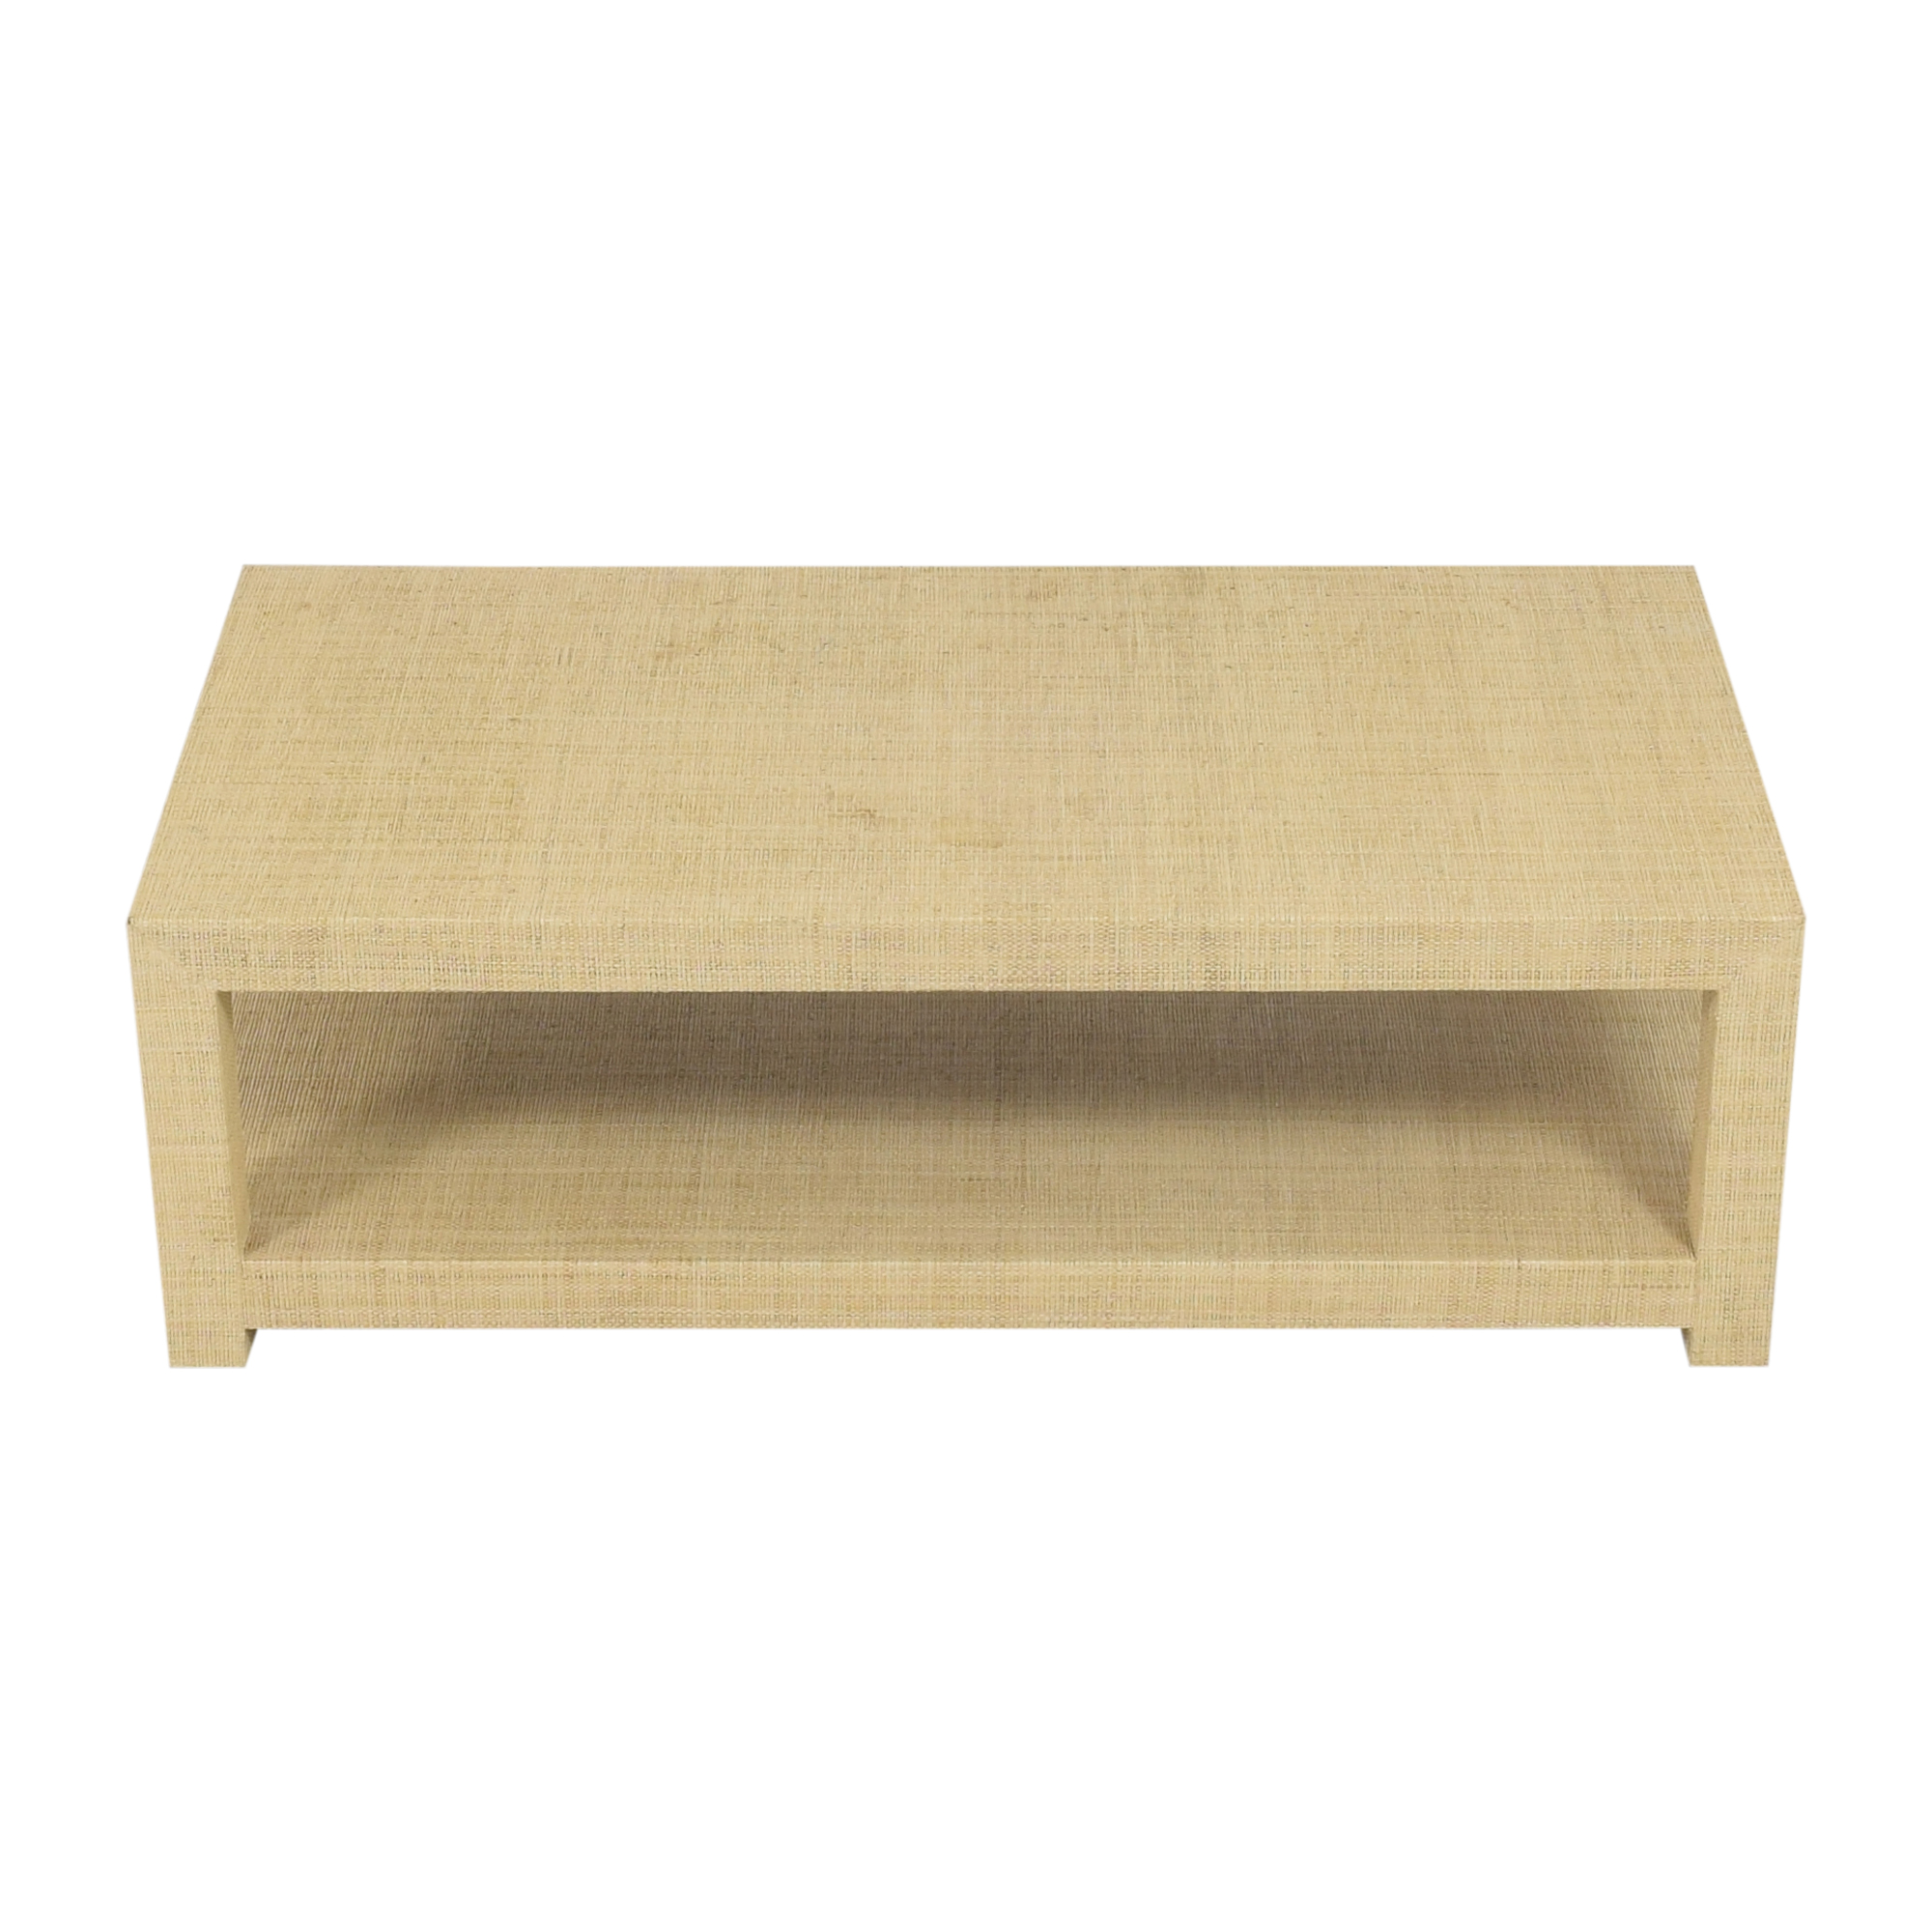 Serena & Lily Serena & Lily Blake Rectangular Coffee Table second hand